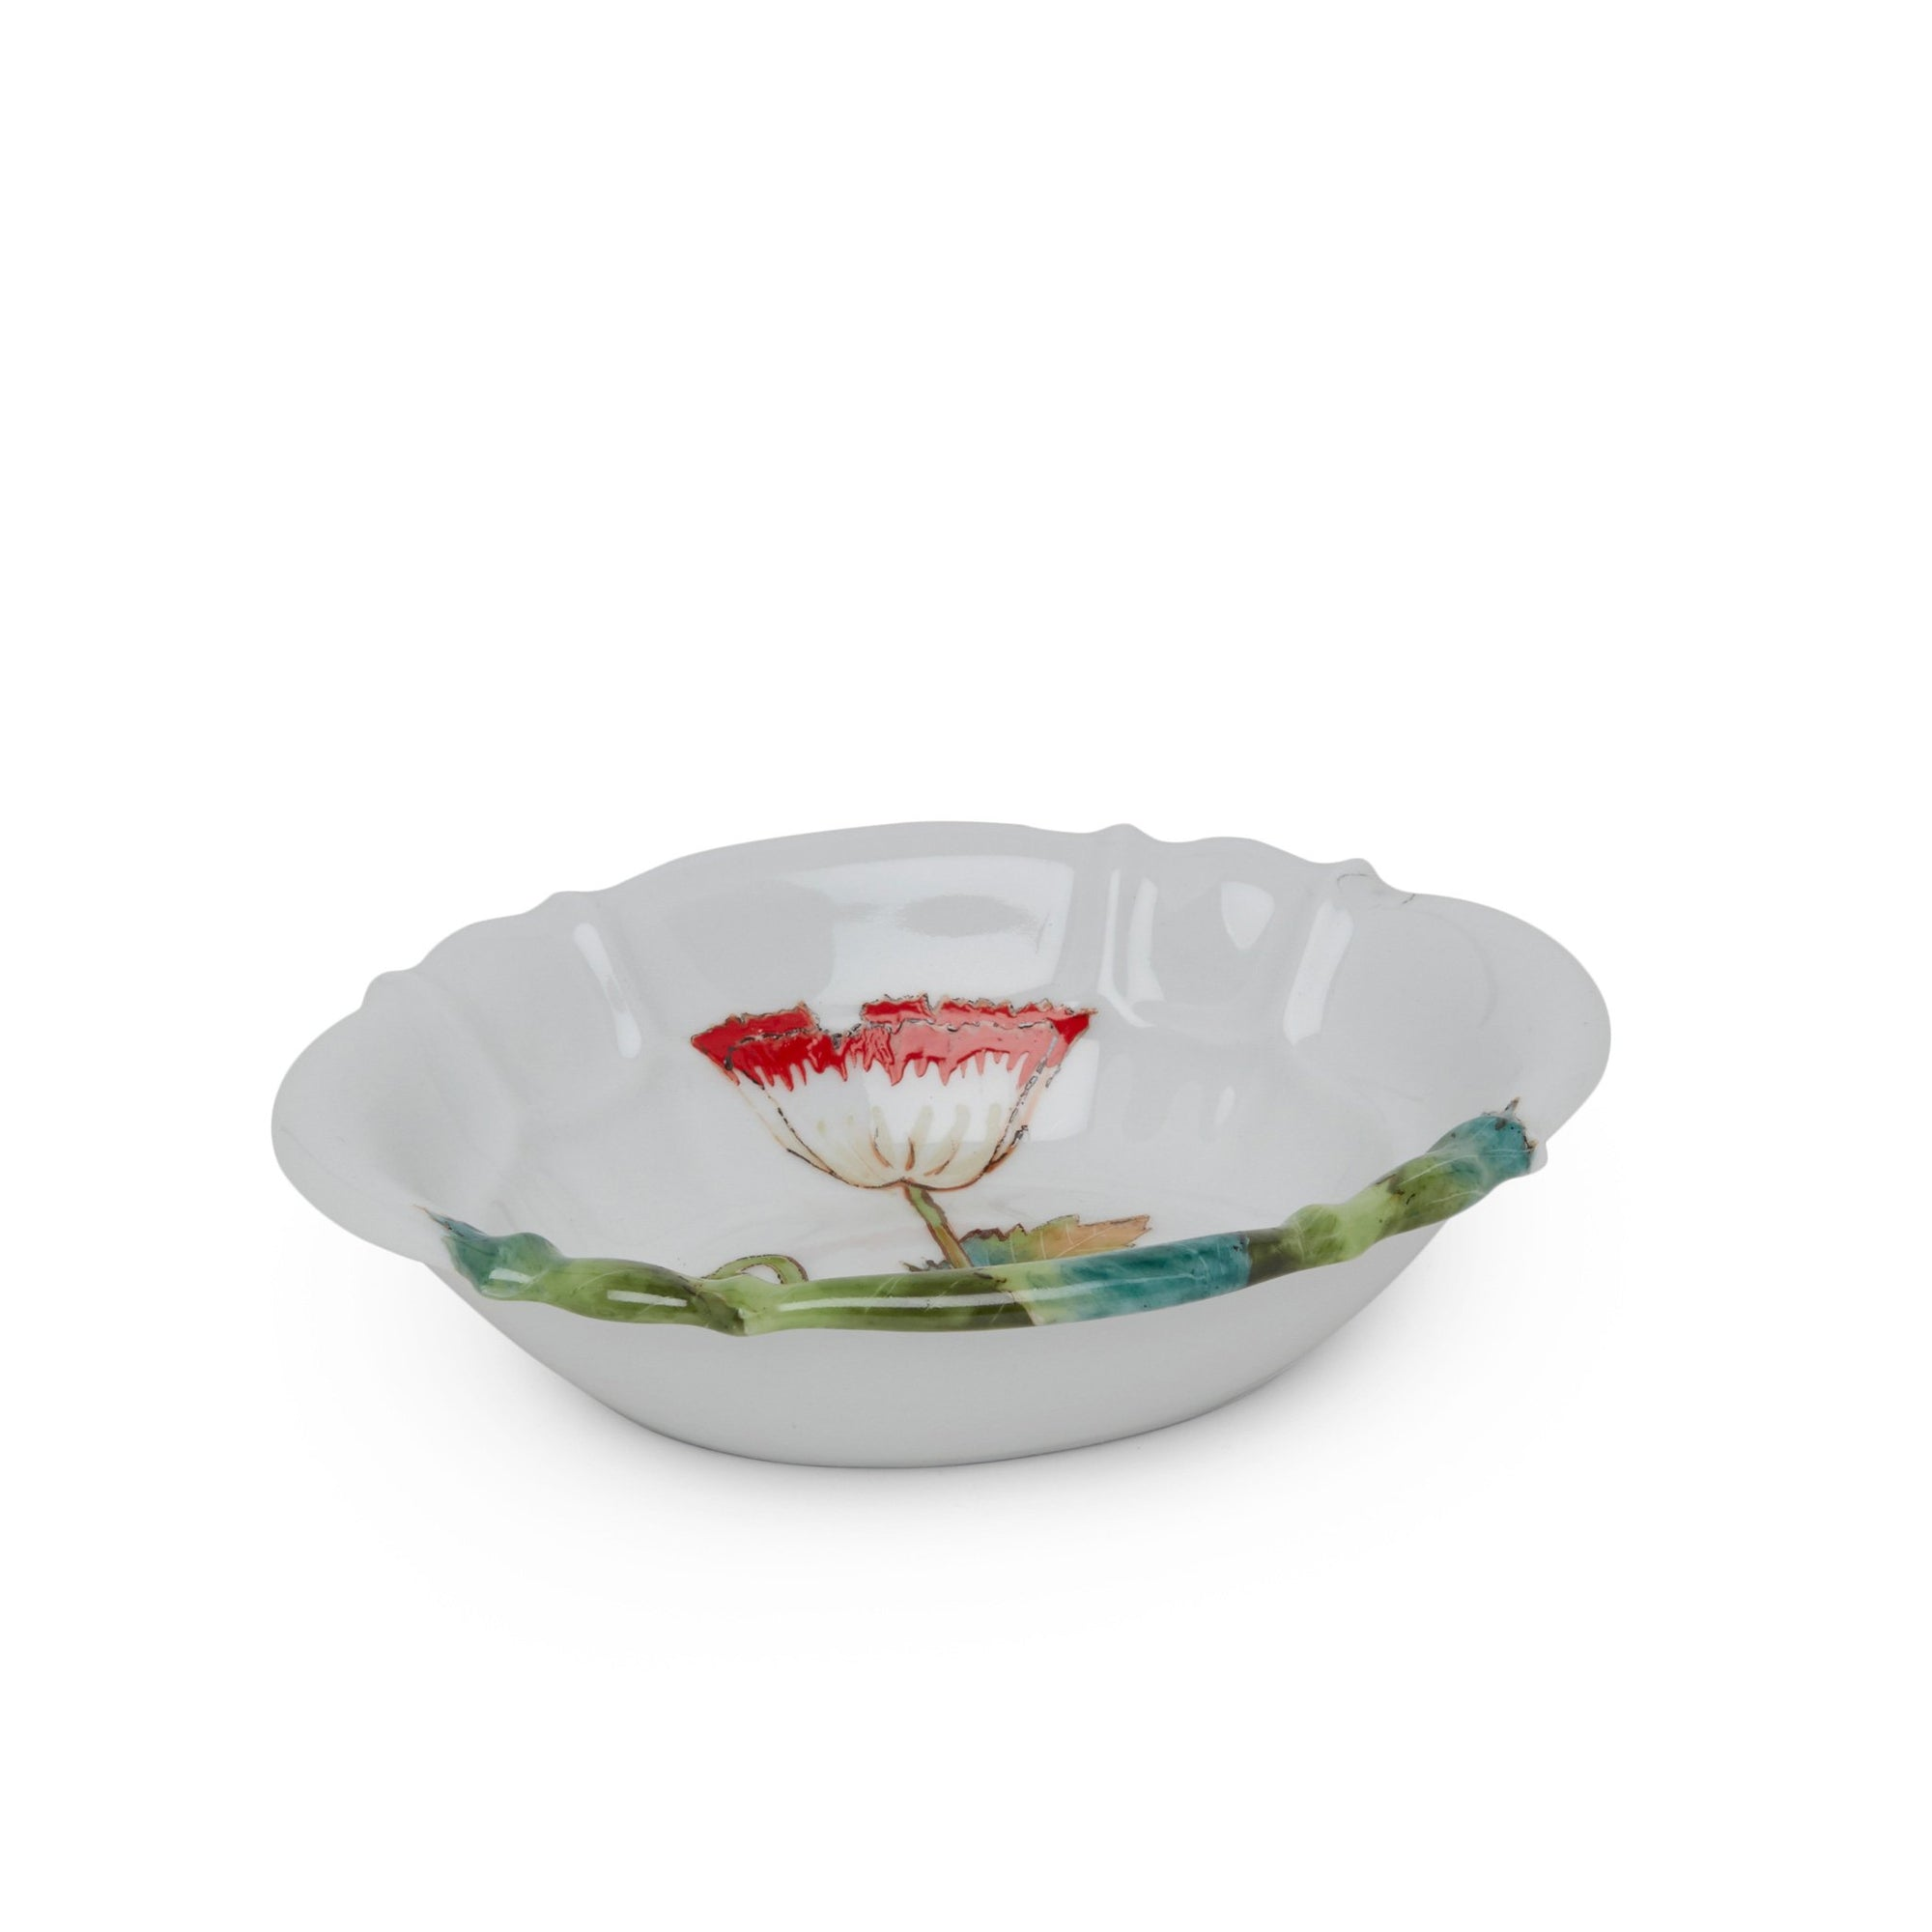 3362-69PP-WH Sherle Wagner International Ceramic Soap Dish with Poppies on White